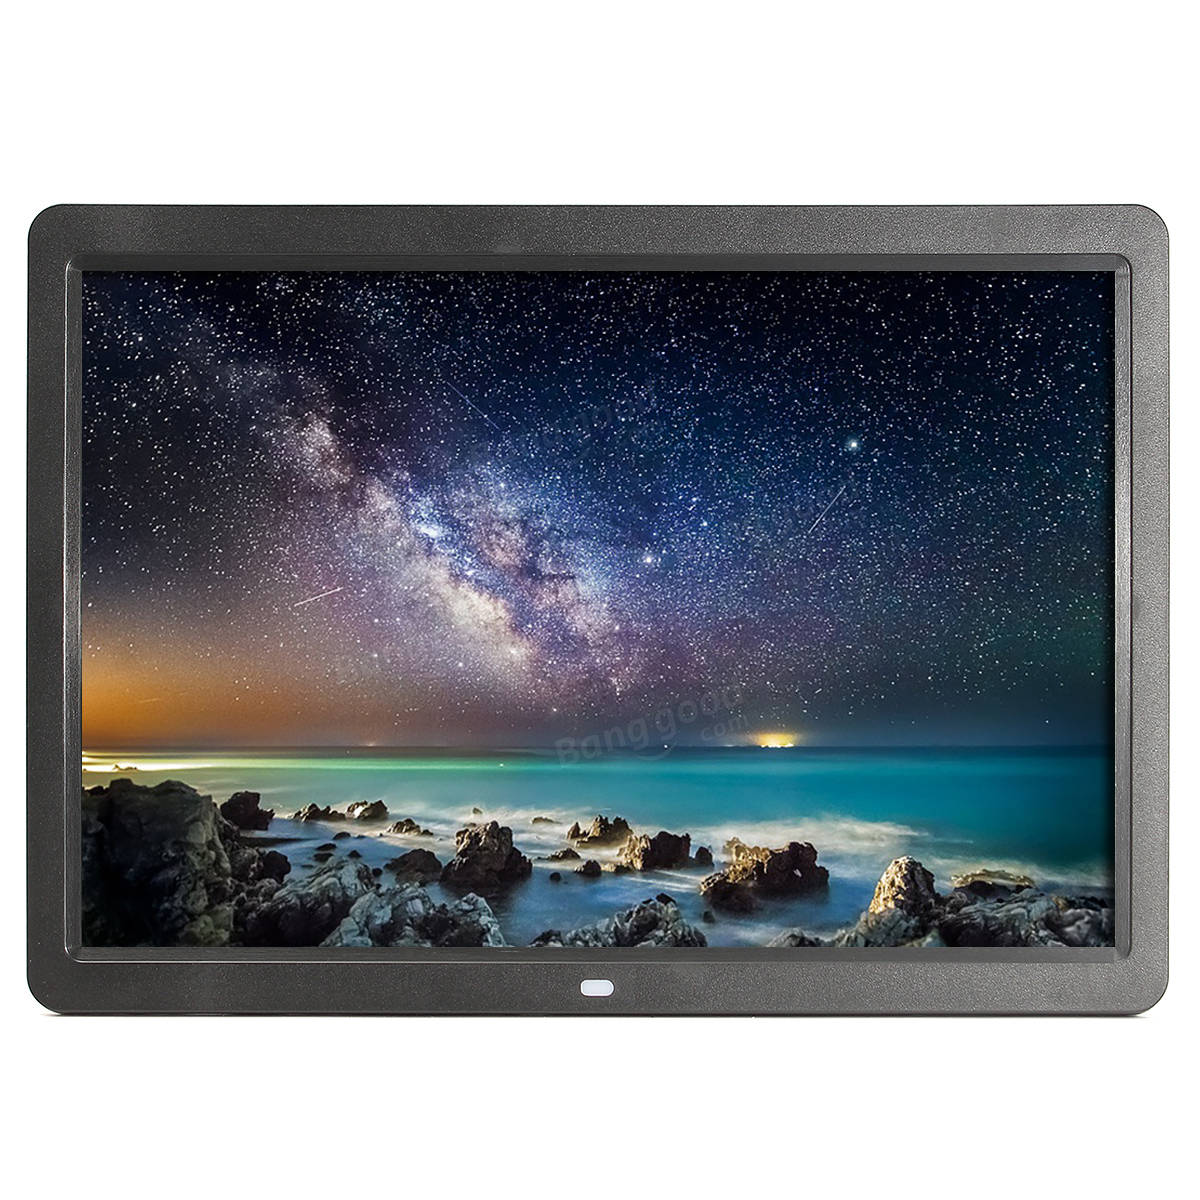 Large 15 inch hd digital photo frames family picture display large 15 inch hd digital photo frames family picture display advertising machine jeuxipadfo Gallery